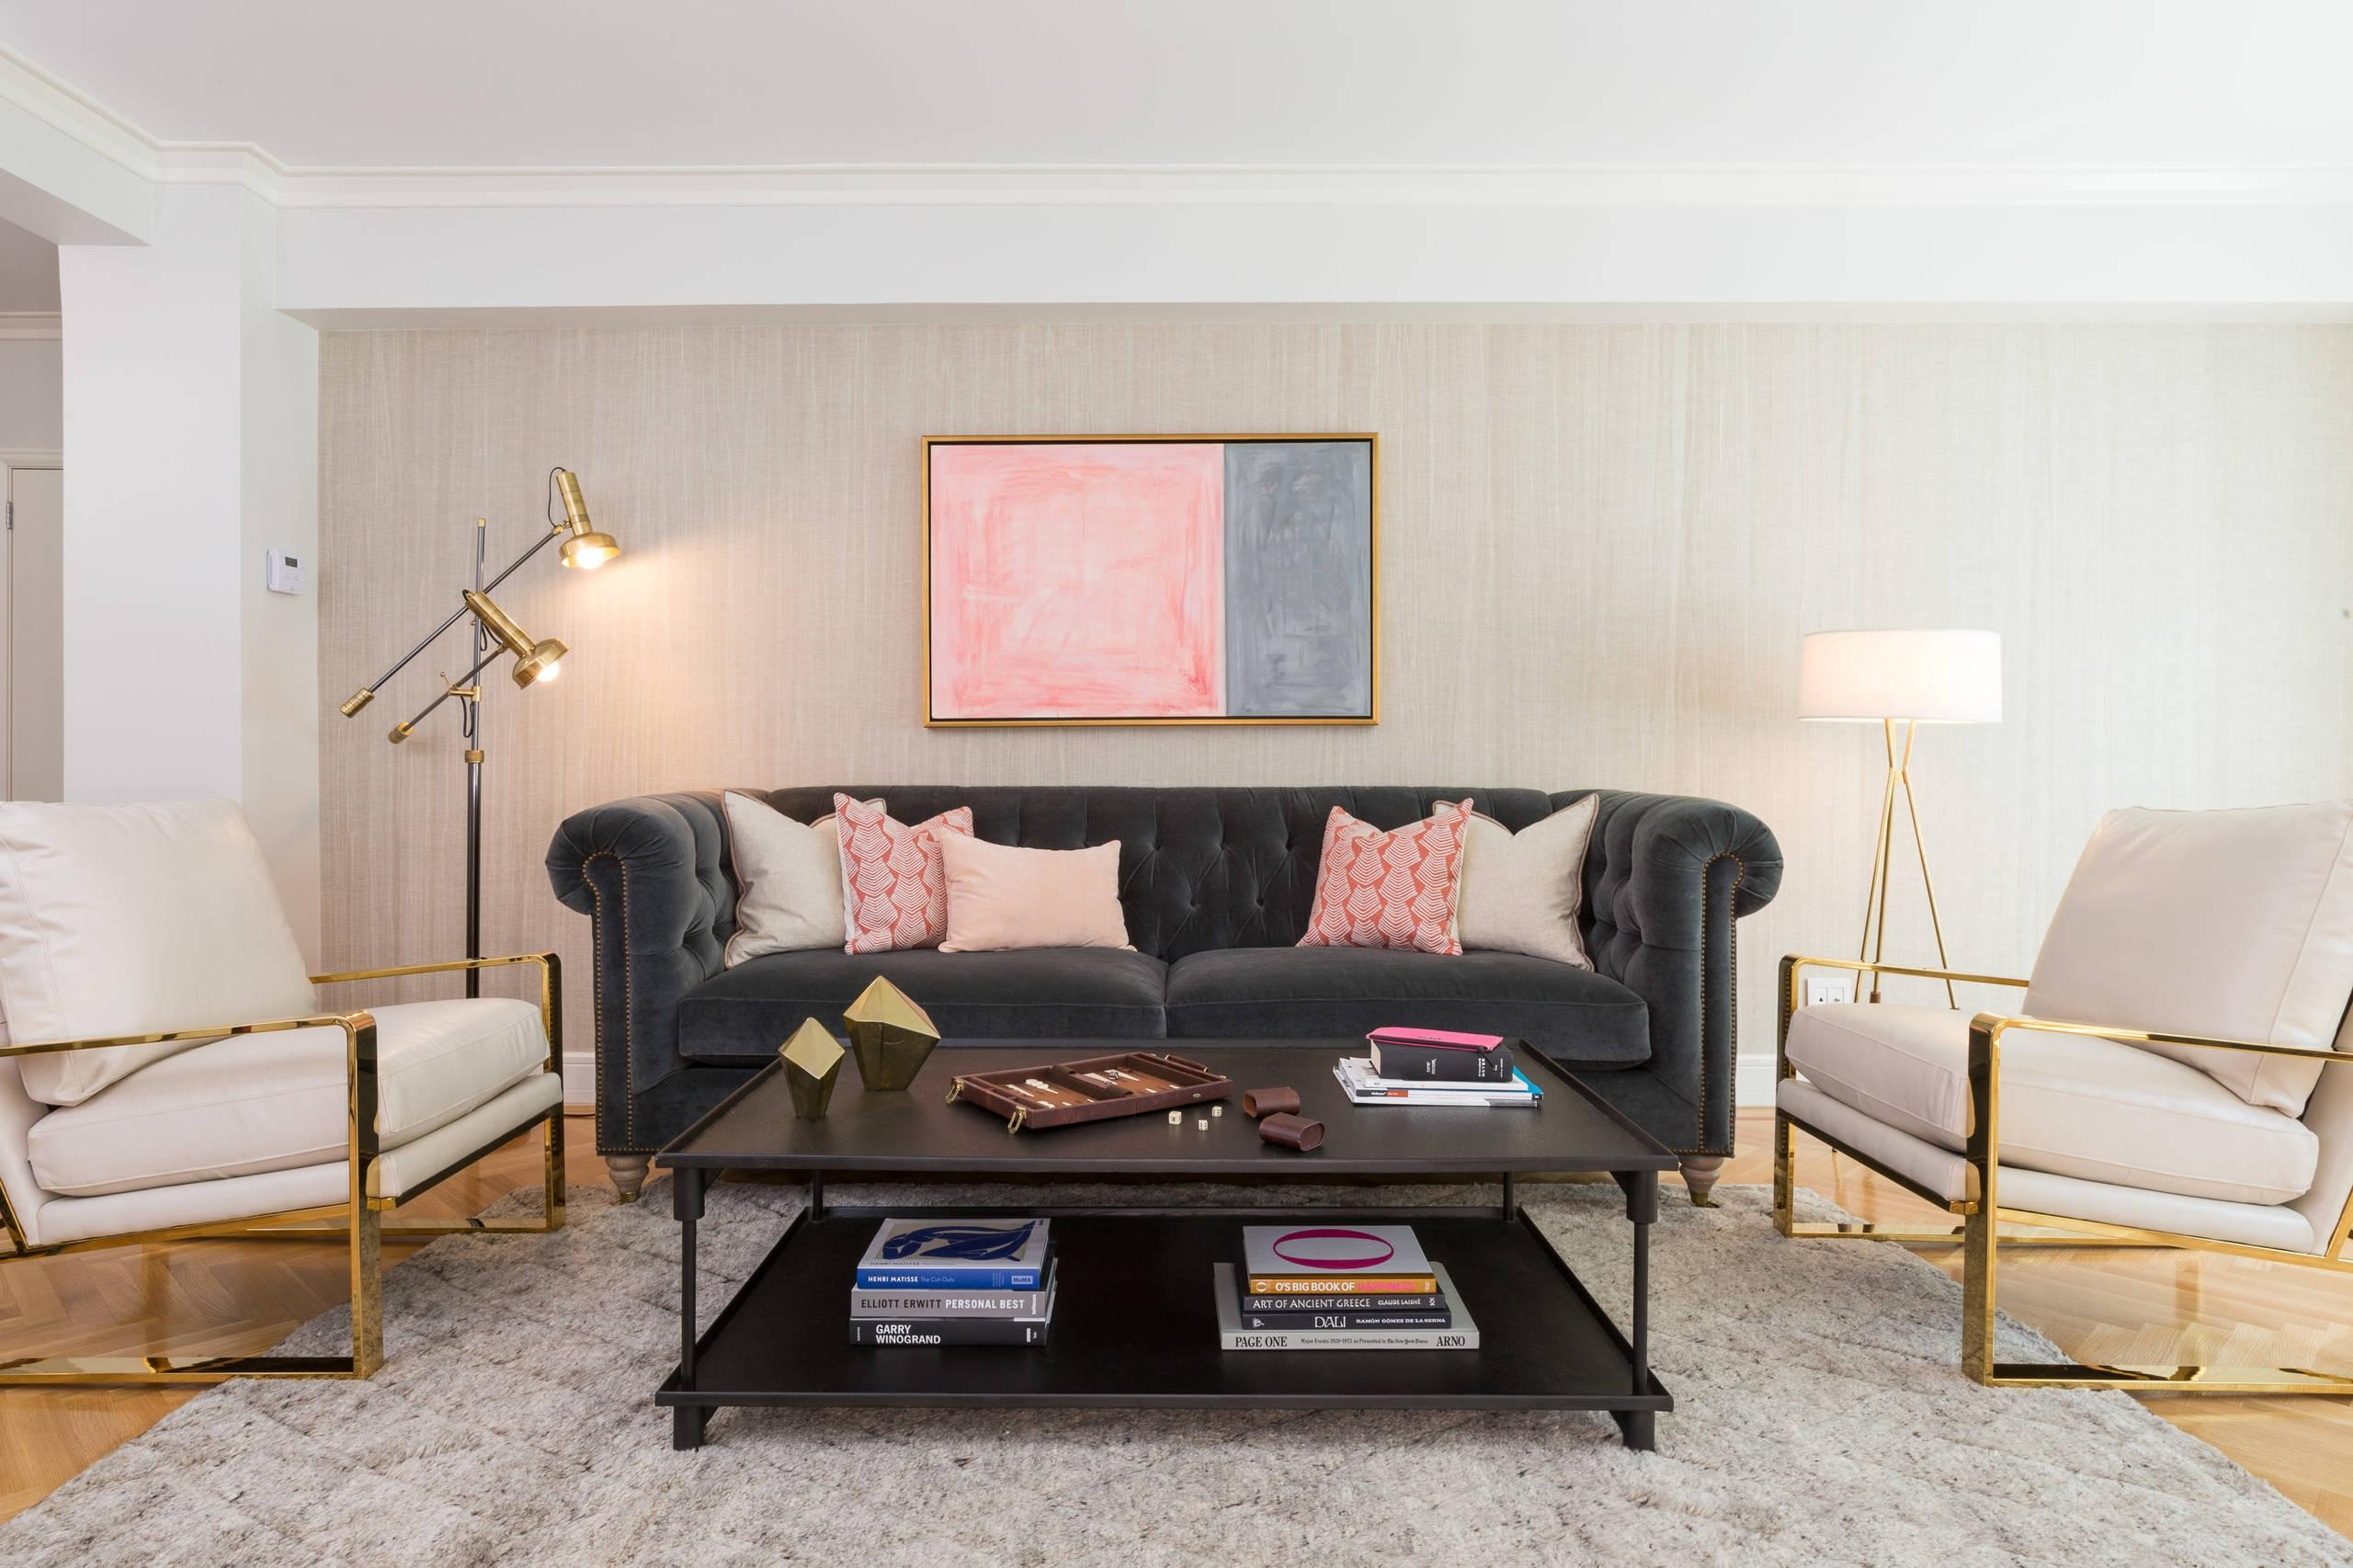 Affordable Tufted Sofa With Inspiration Gallery 24763 | Kengire With Regard To Affordable Tufted Sofas (View 11 of 20)